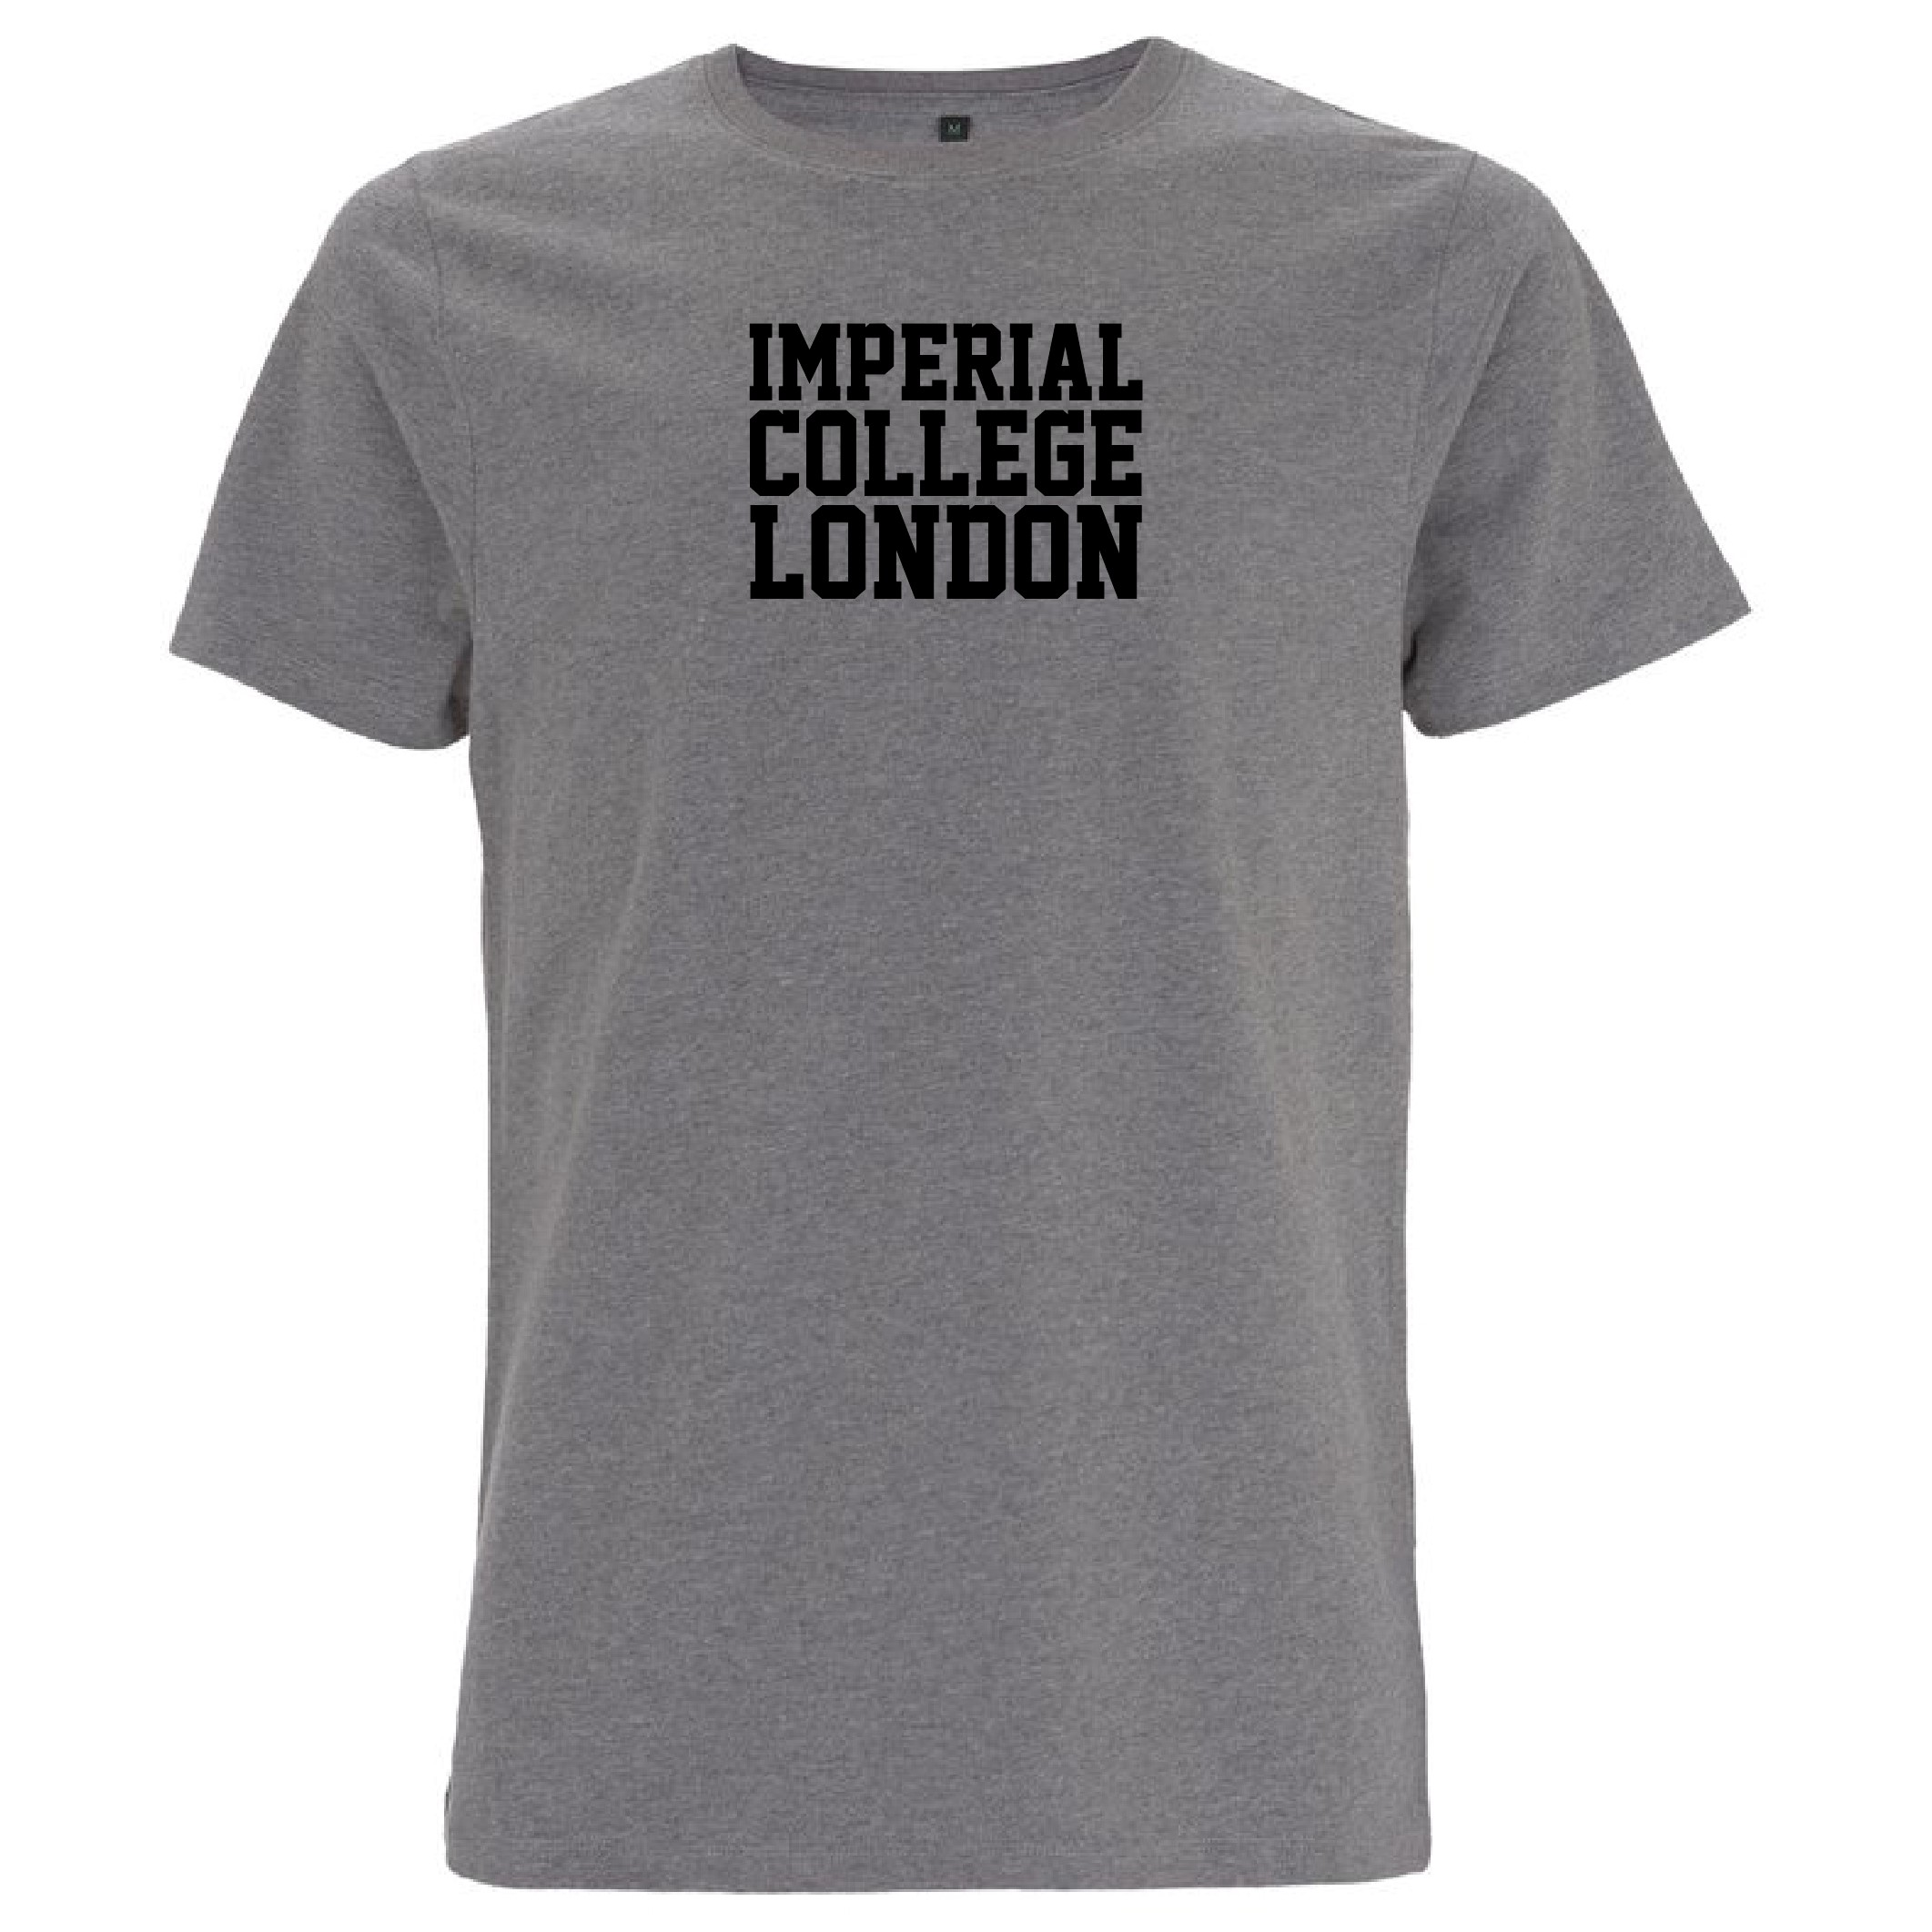 Imperial Block Letter T-Shirt in Grey